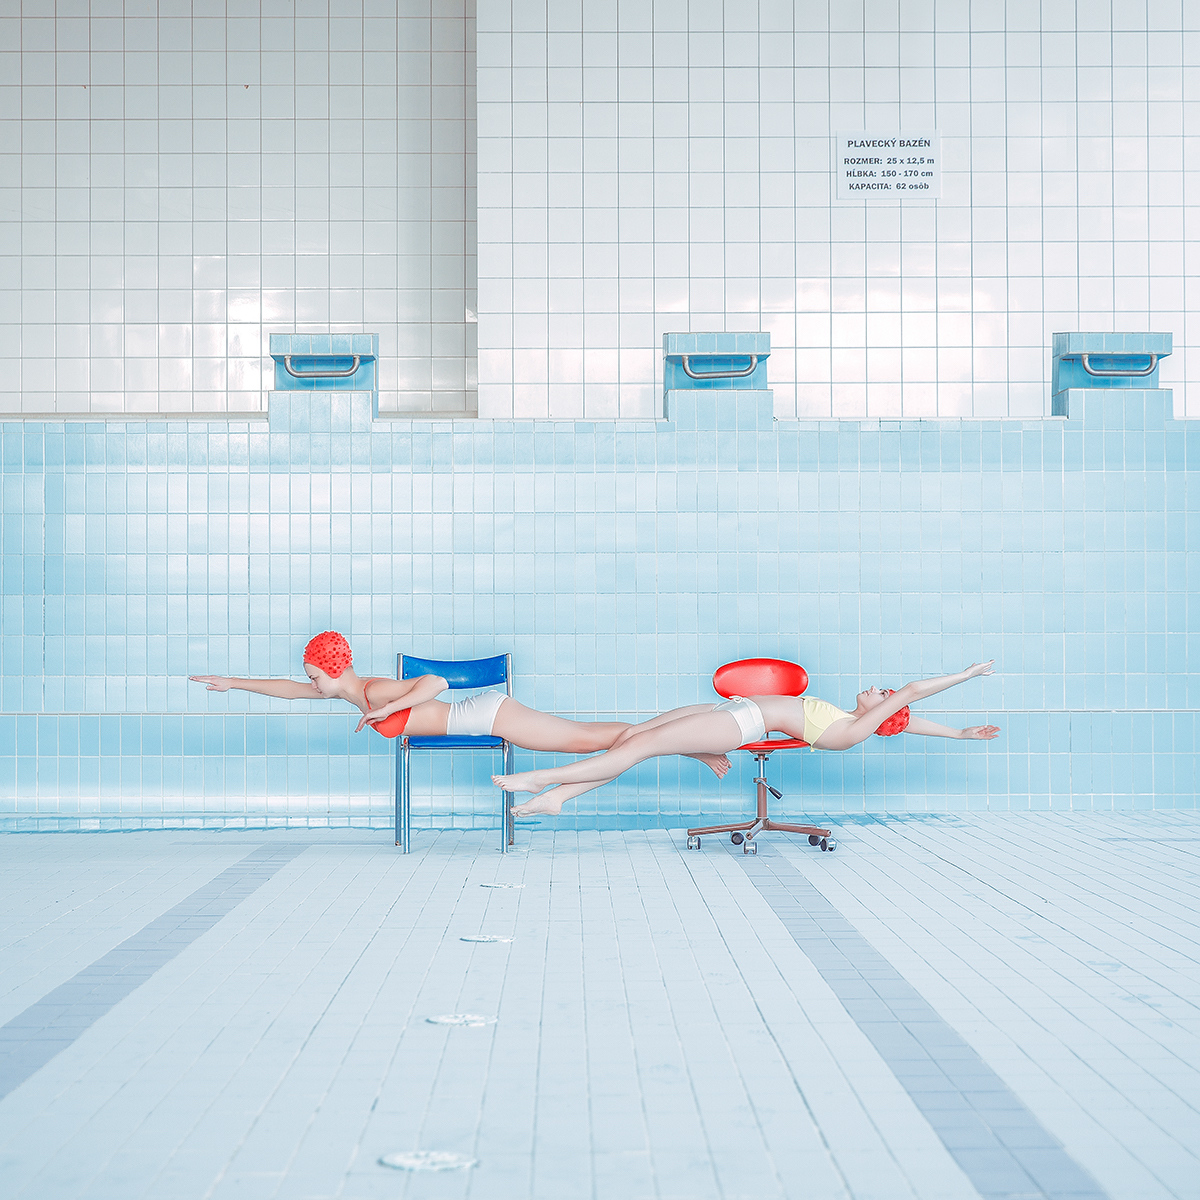 Synchronistic Images Captured in Soviet Era Swimming Pools by Photographer Maria Svarbova